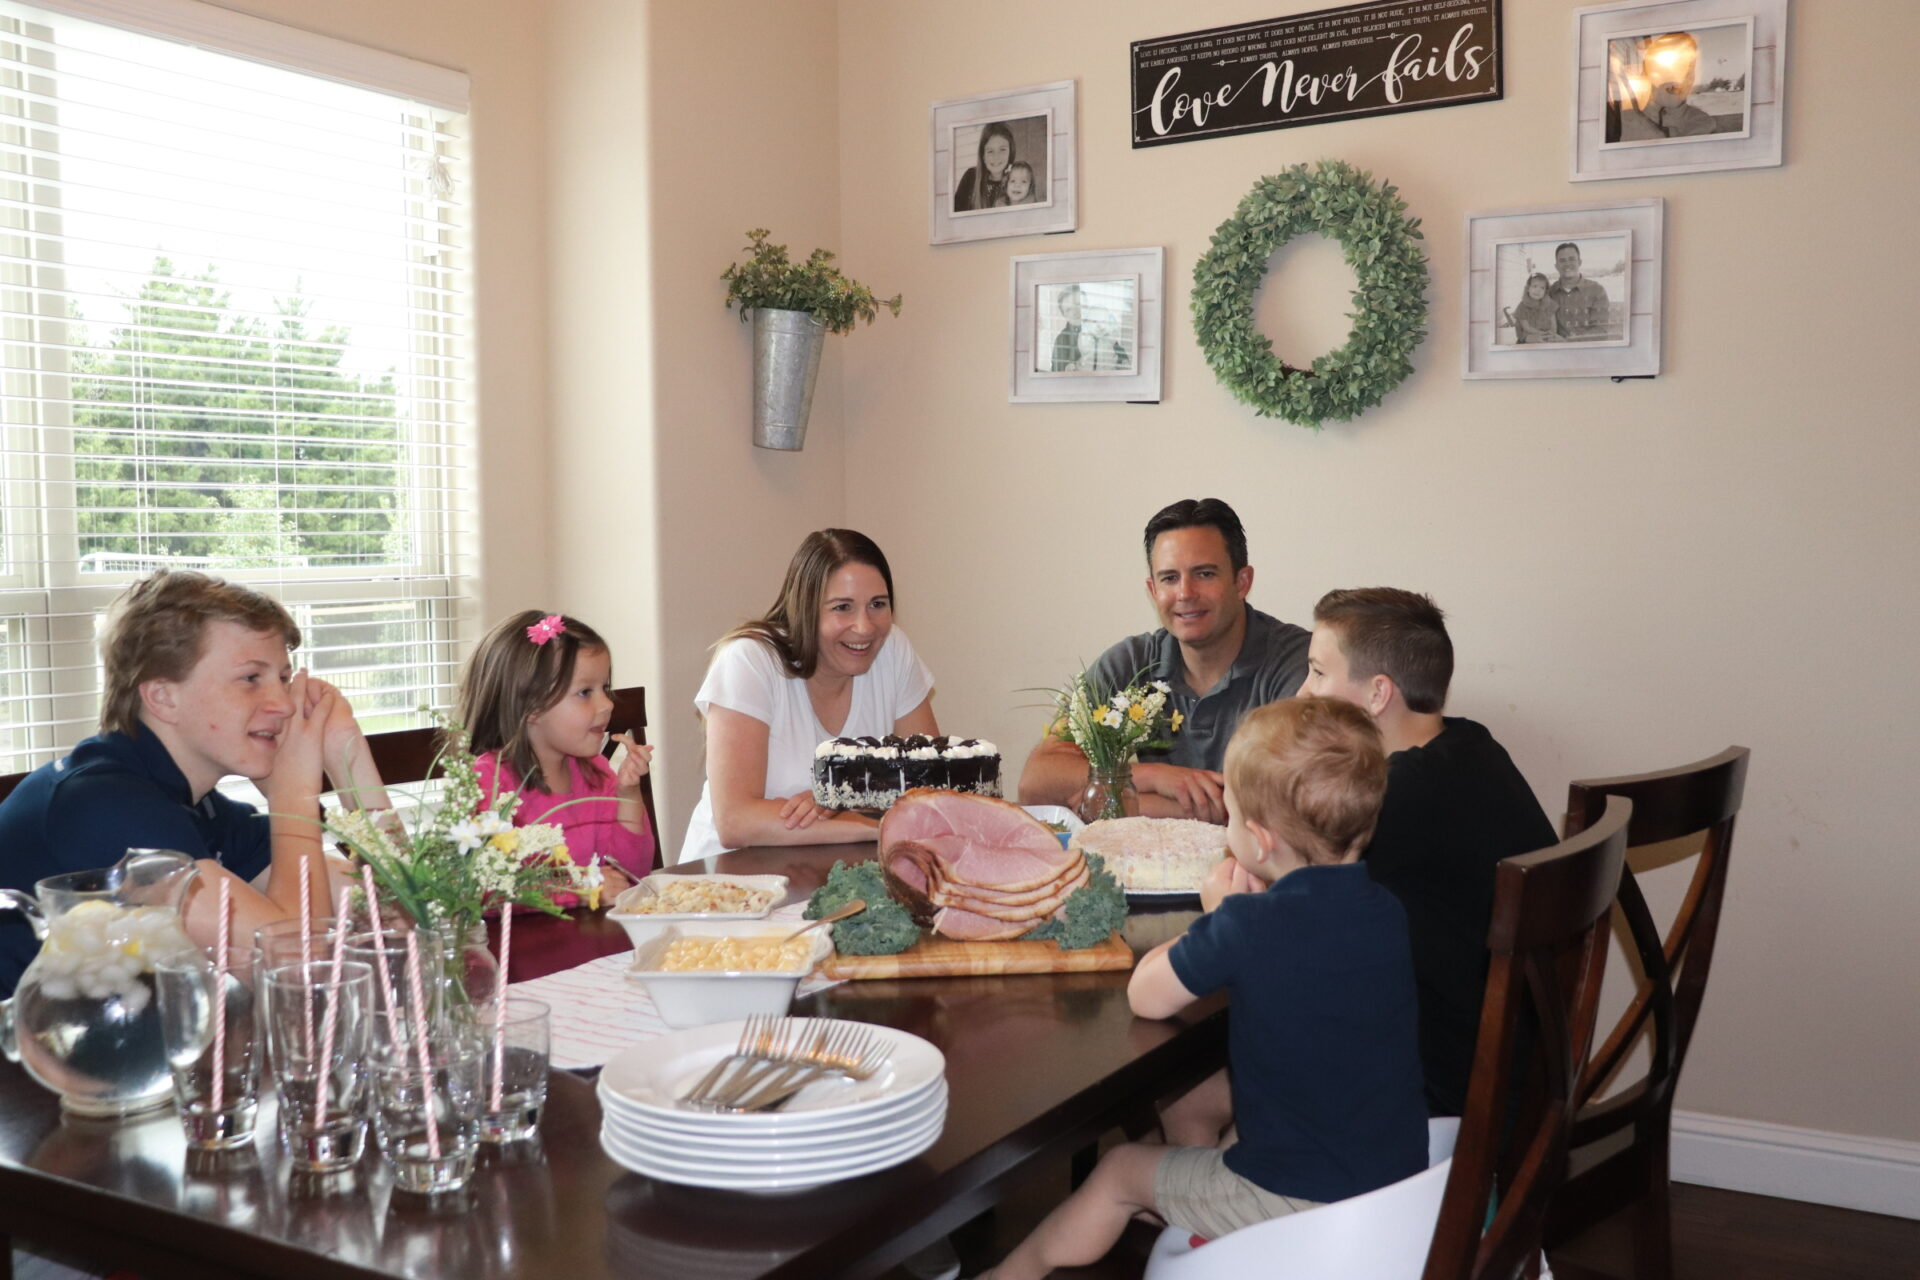 Looking for ways to simplify this Easter? We have 5 simple ways to celebrate Easter as a family this year and create amazing memories!